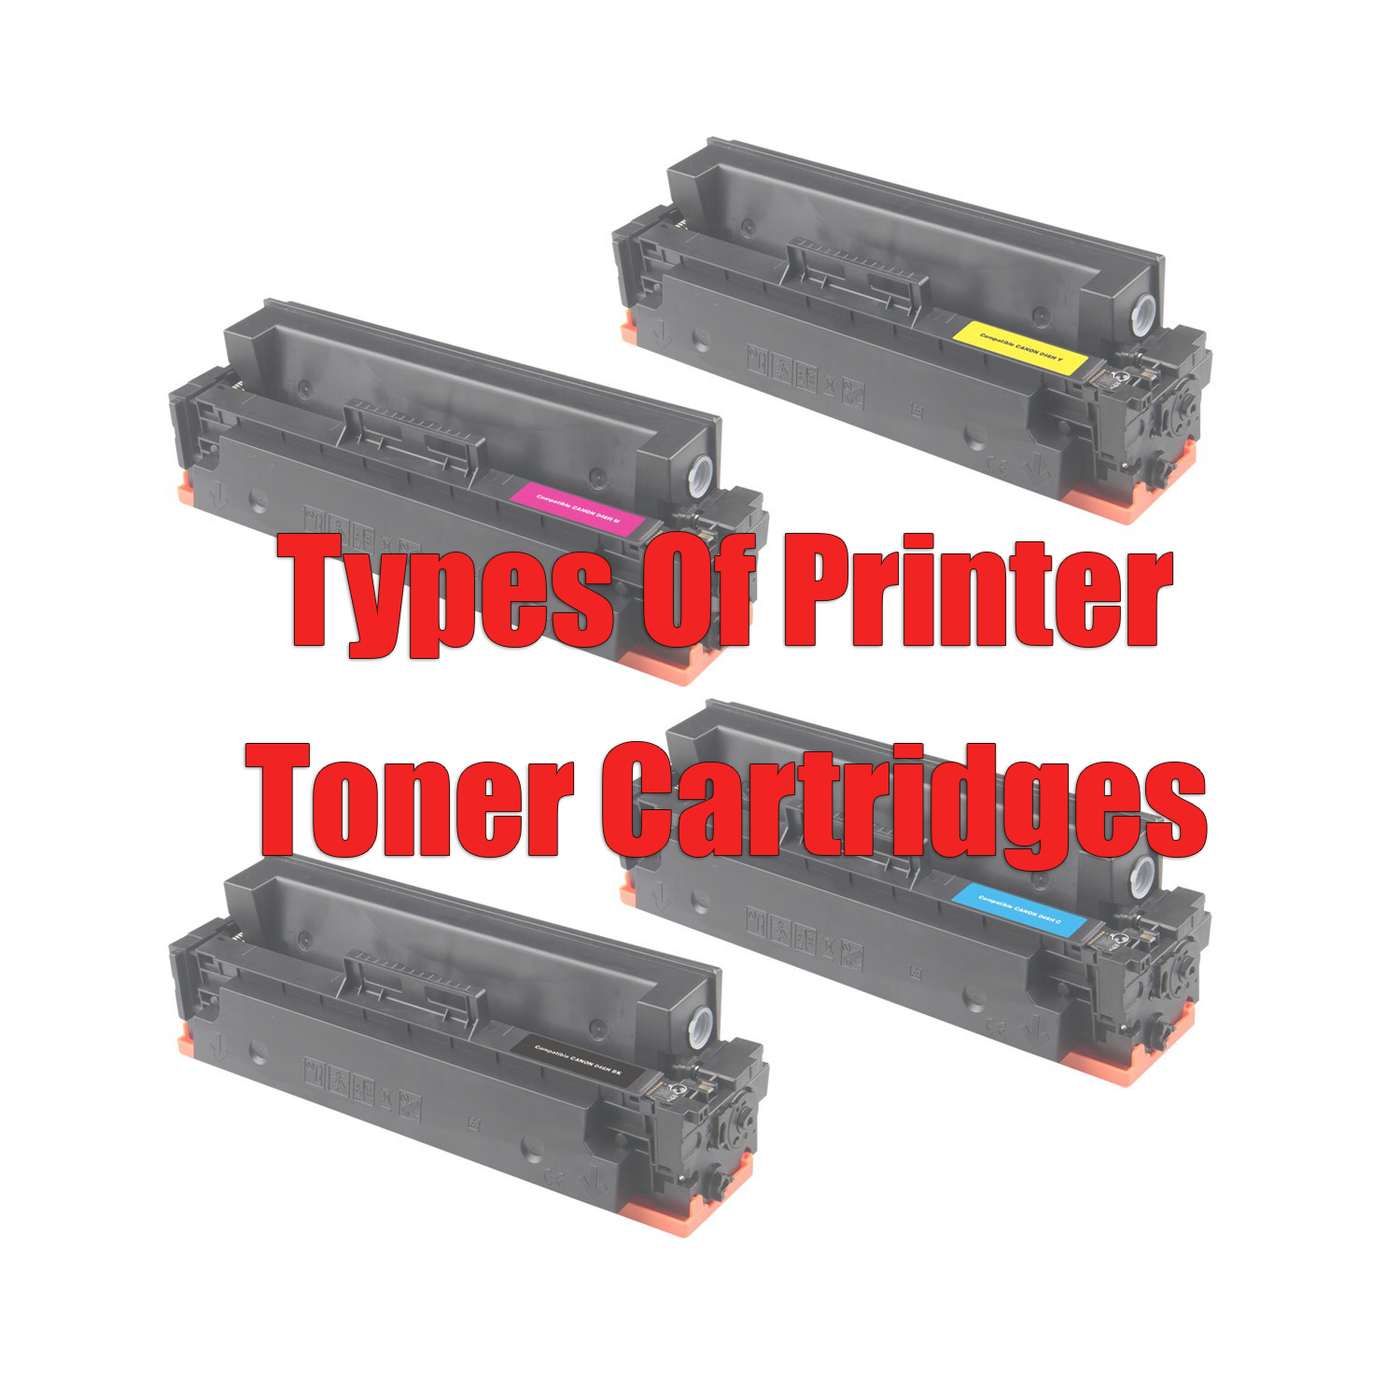 Types Of Printer Toner Cartridges